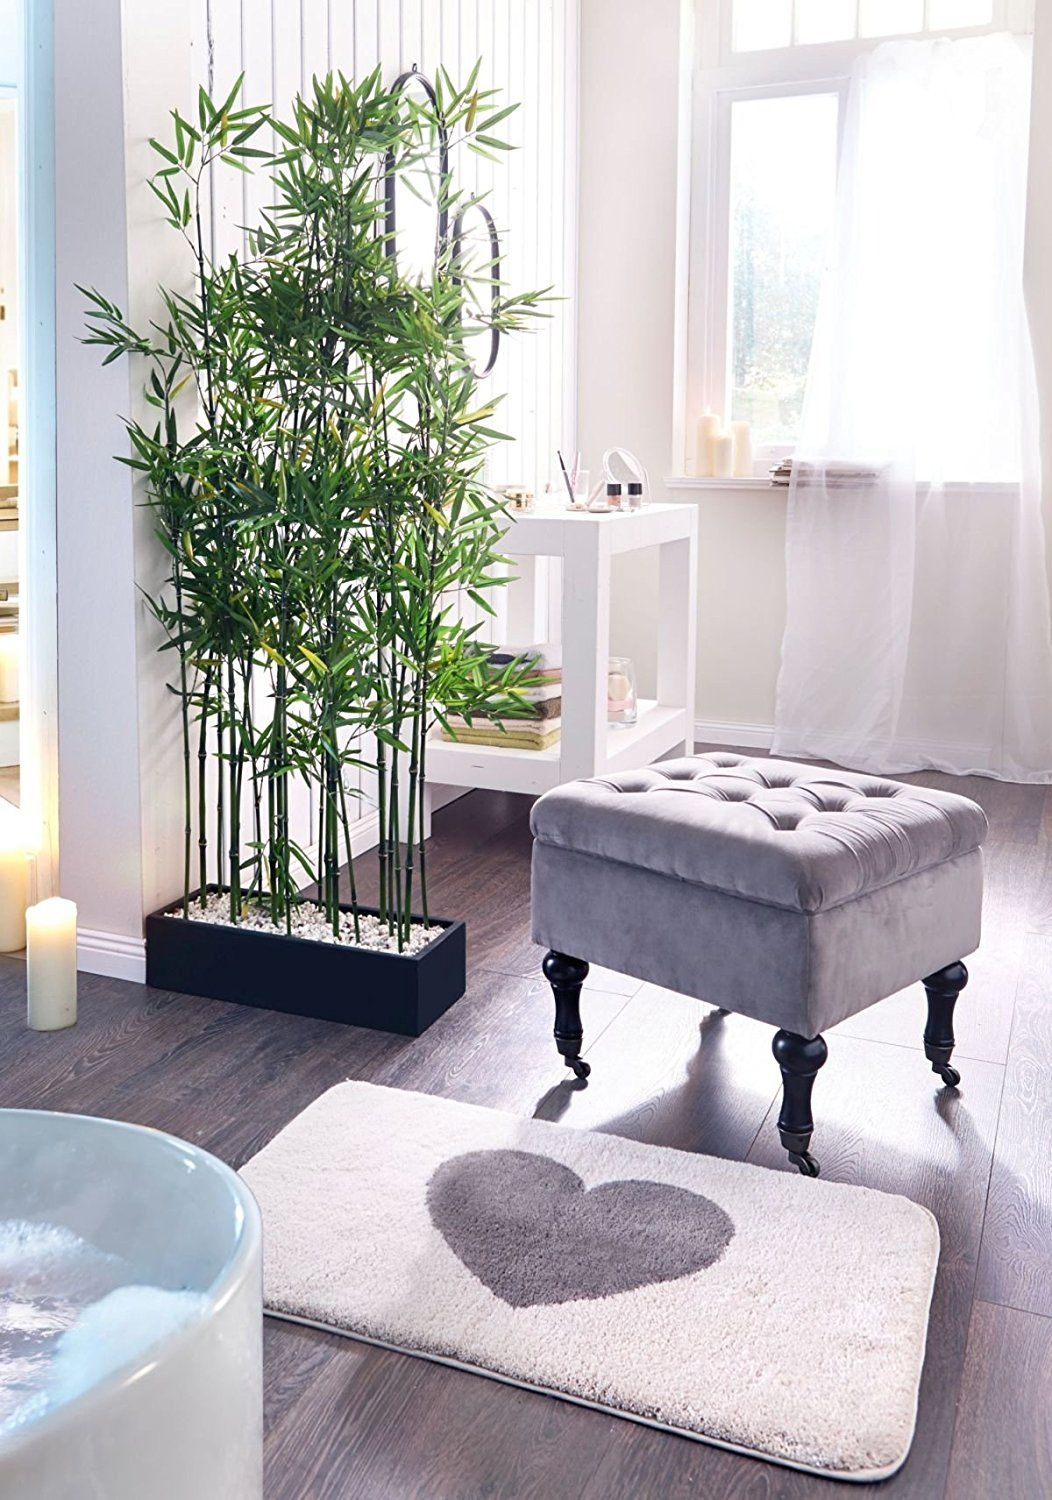 Artificial bamboo plant room divider approx cm high interior